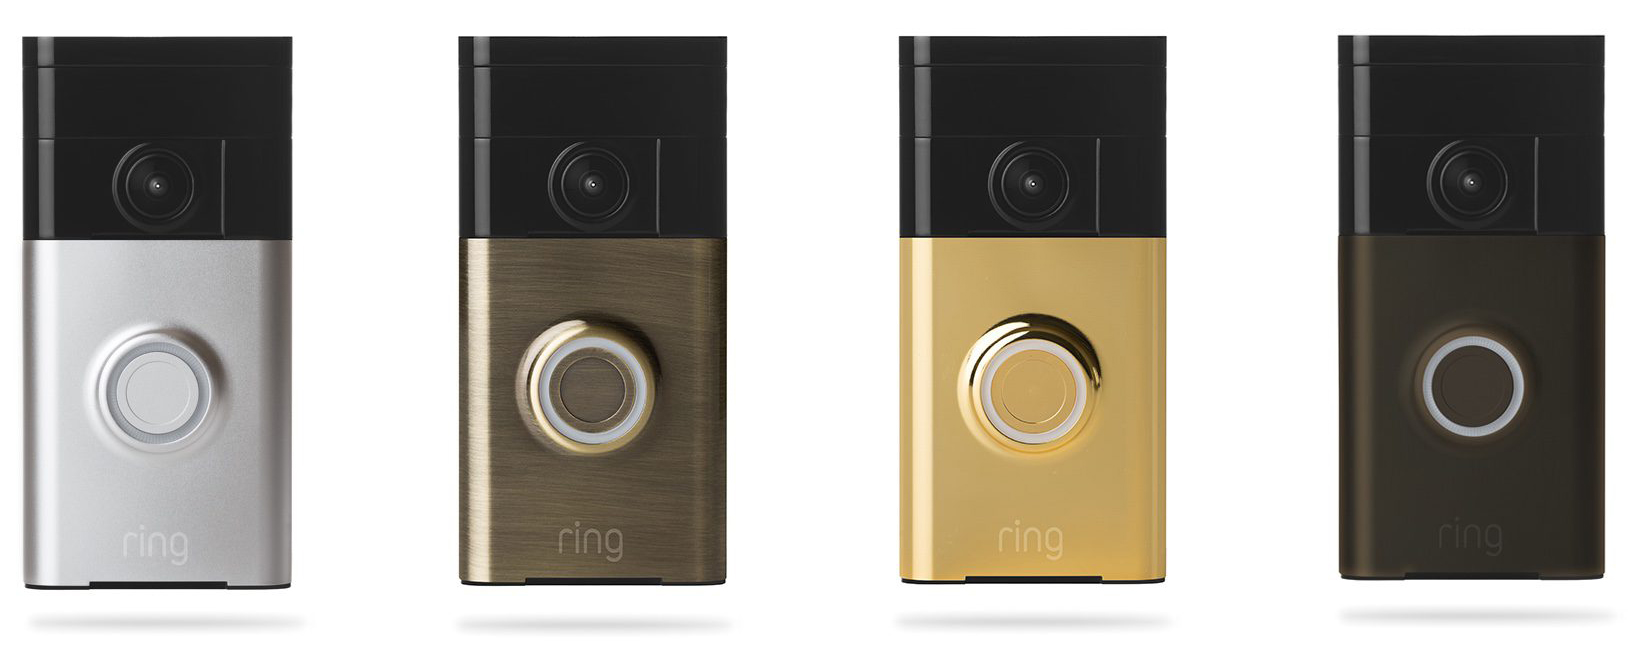 ring-video-doorbell-all-finishes